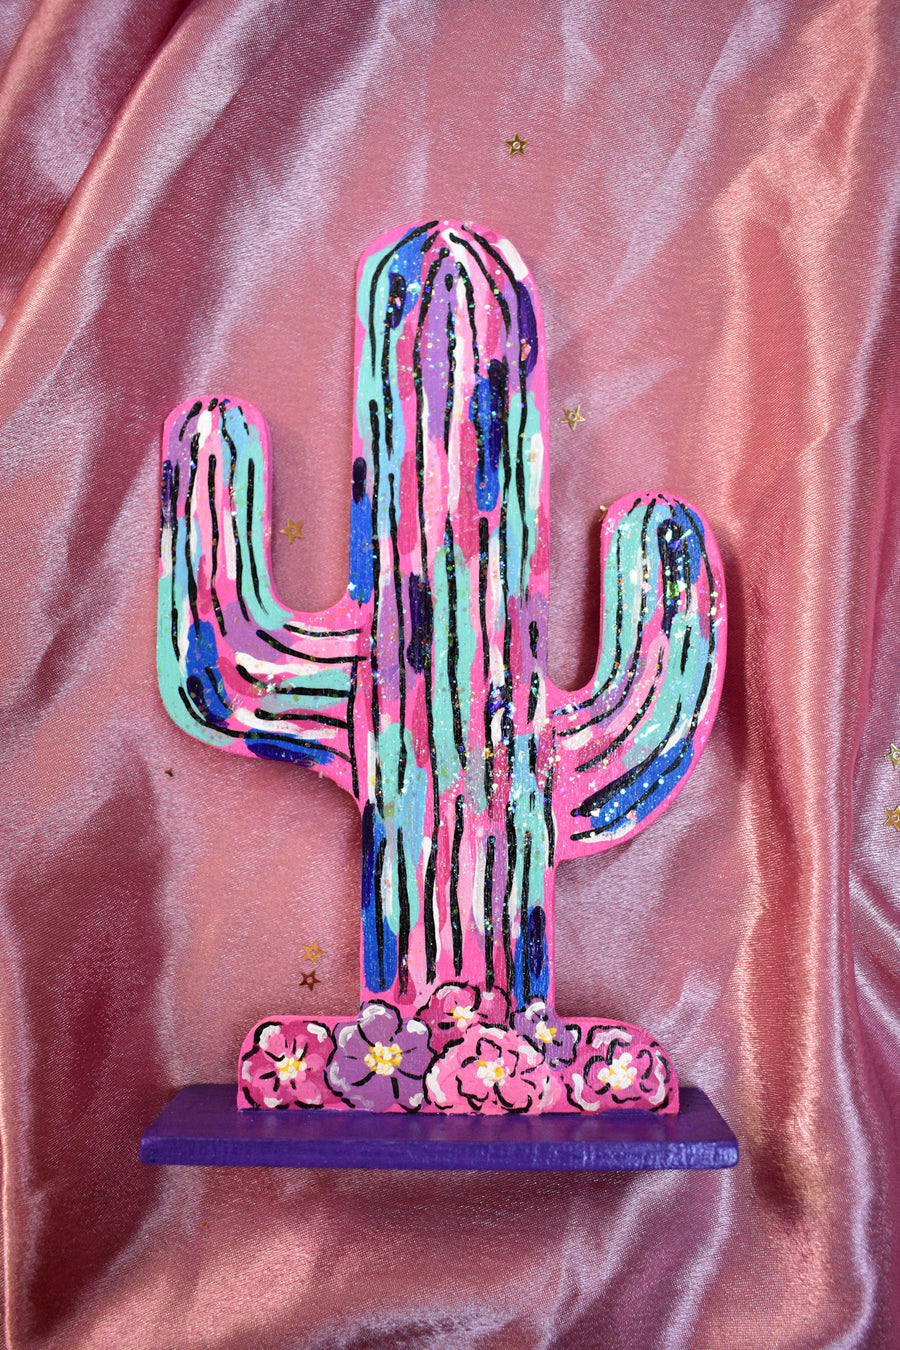 Original Painting | Cut Out Cacti Wood Painting